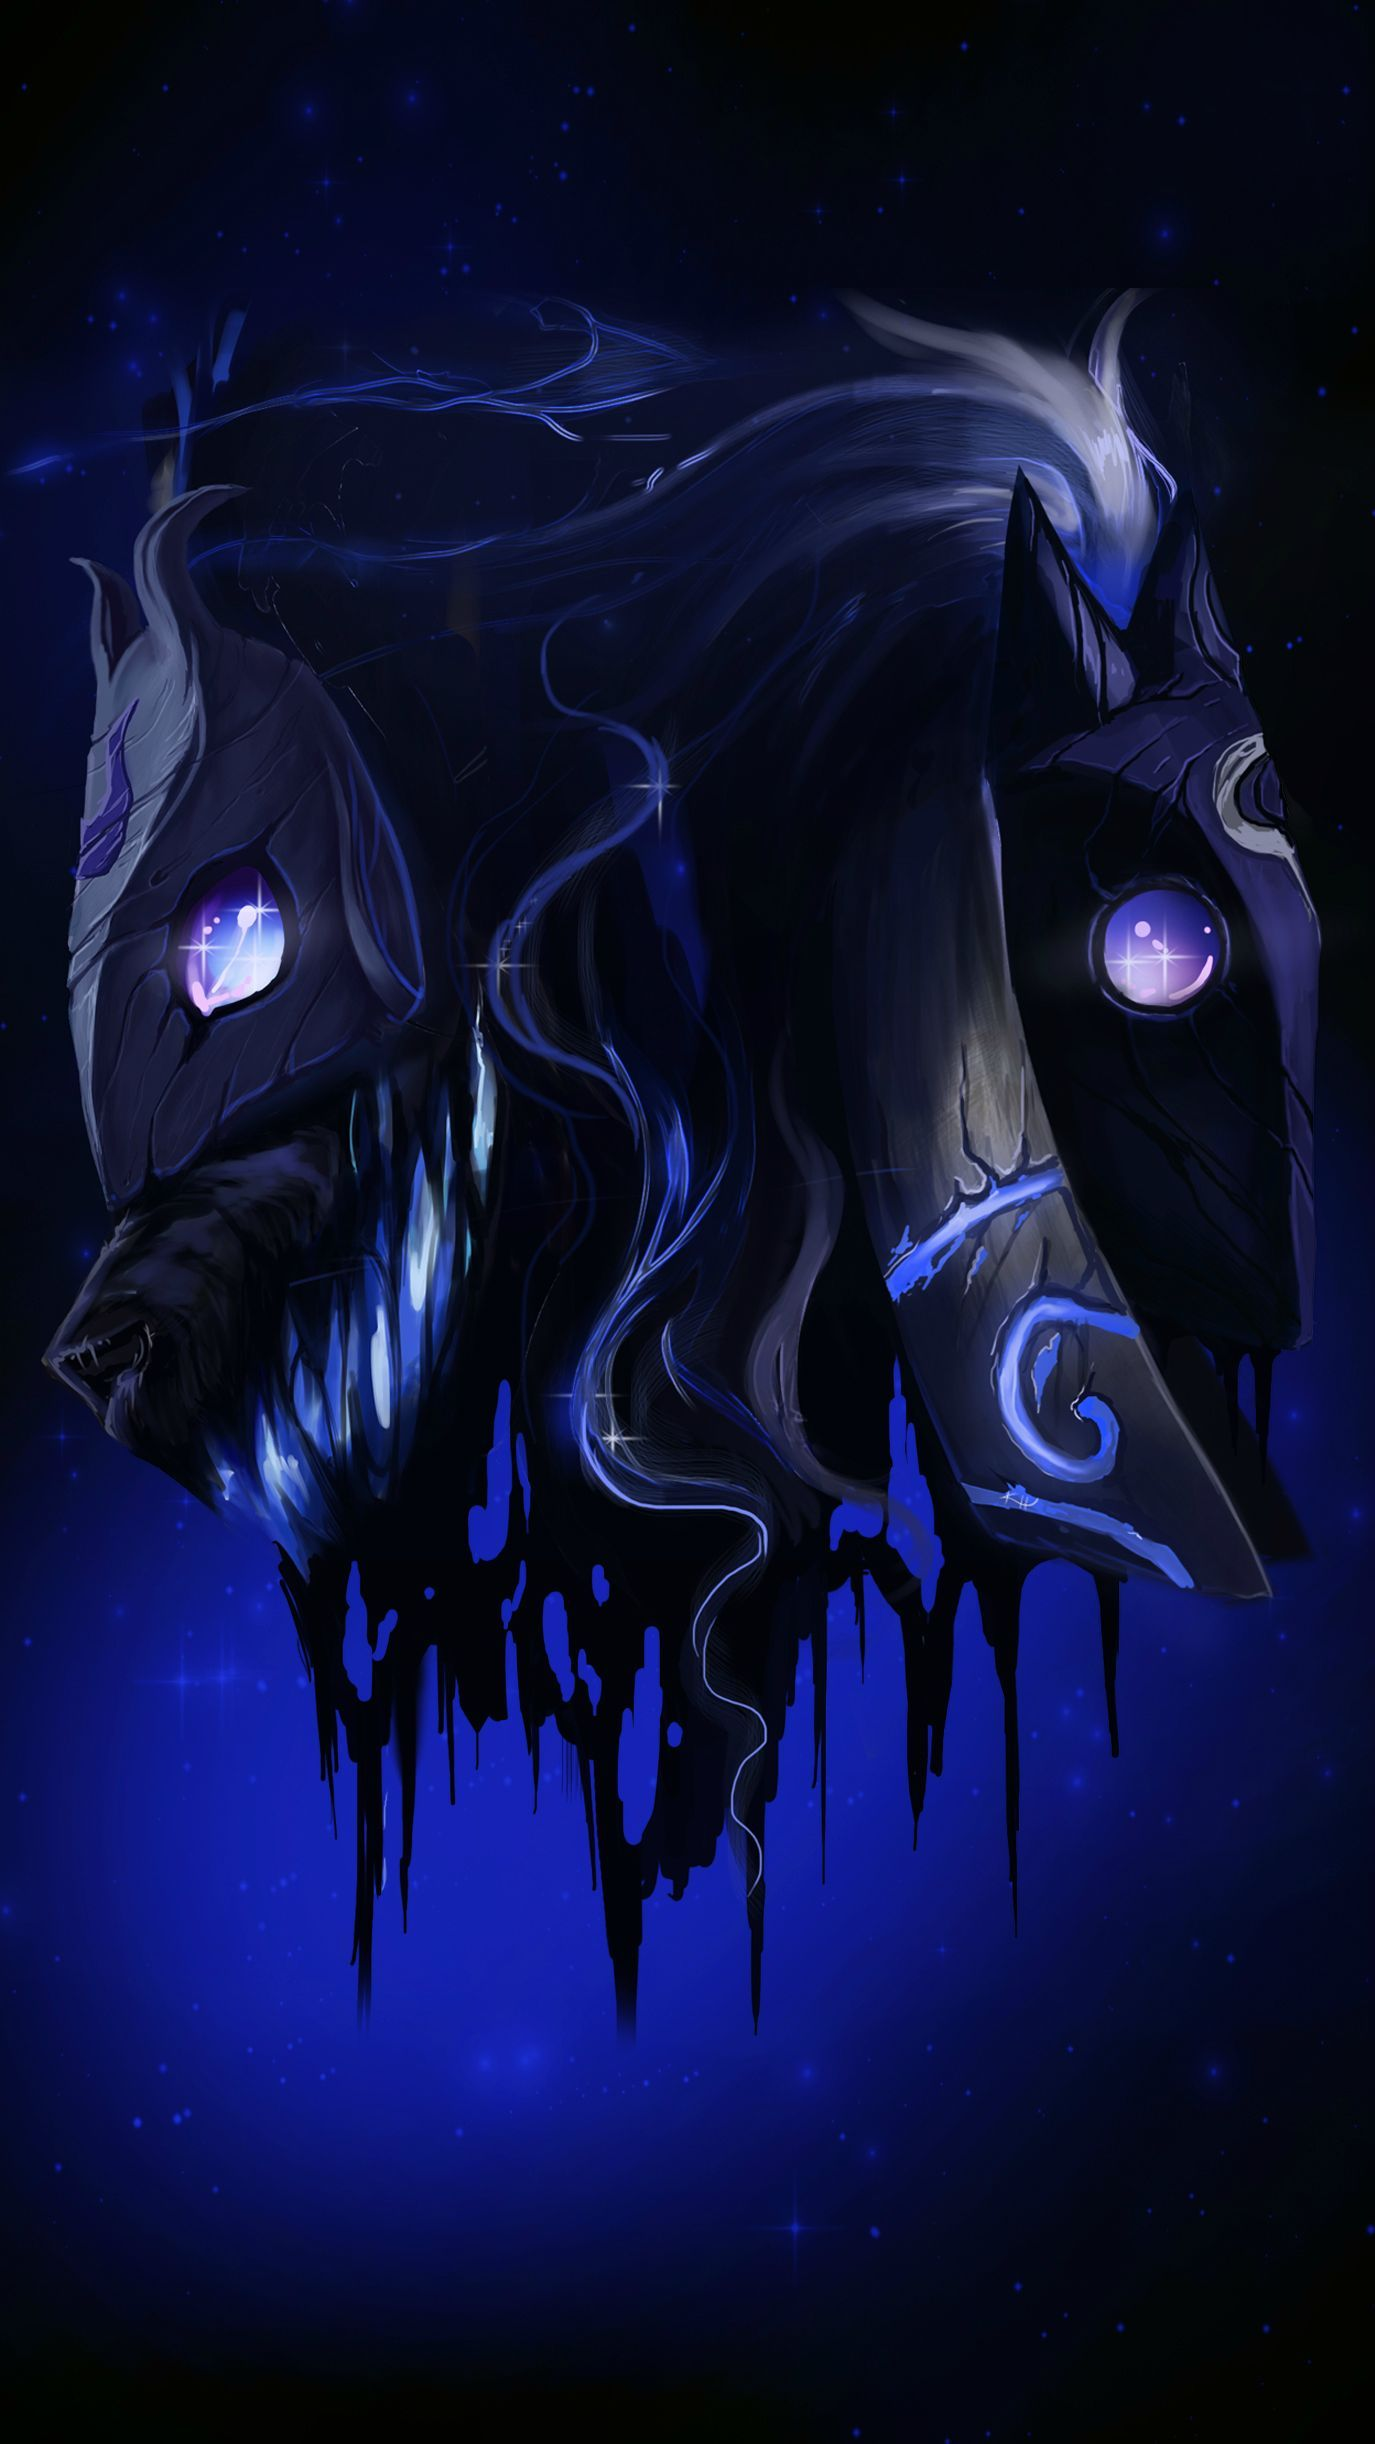 1375x2444 Kindred 1080x1920 Wolf and Lamb by KH for Mobile Phone WallPaper - Imgur